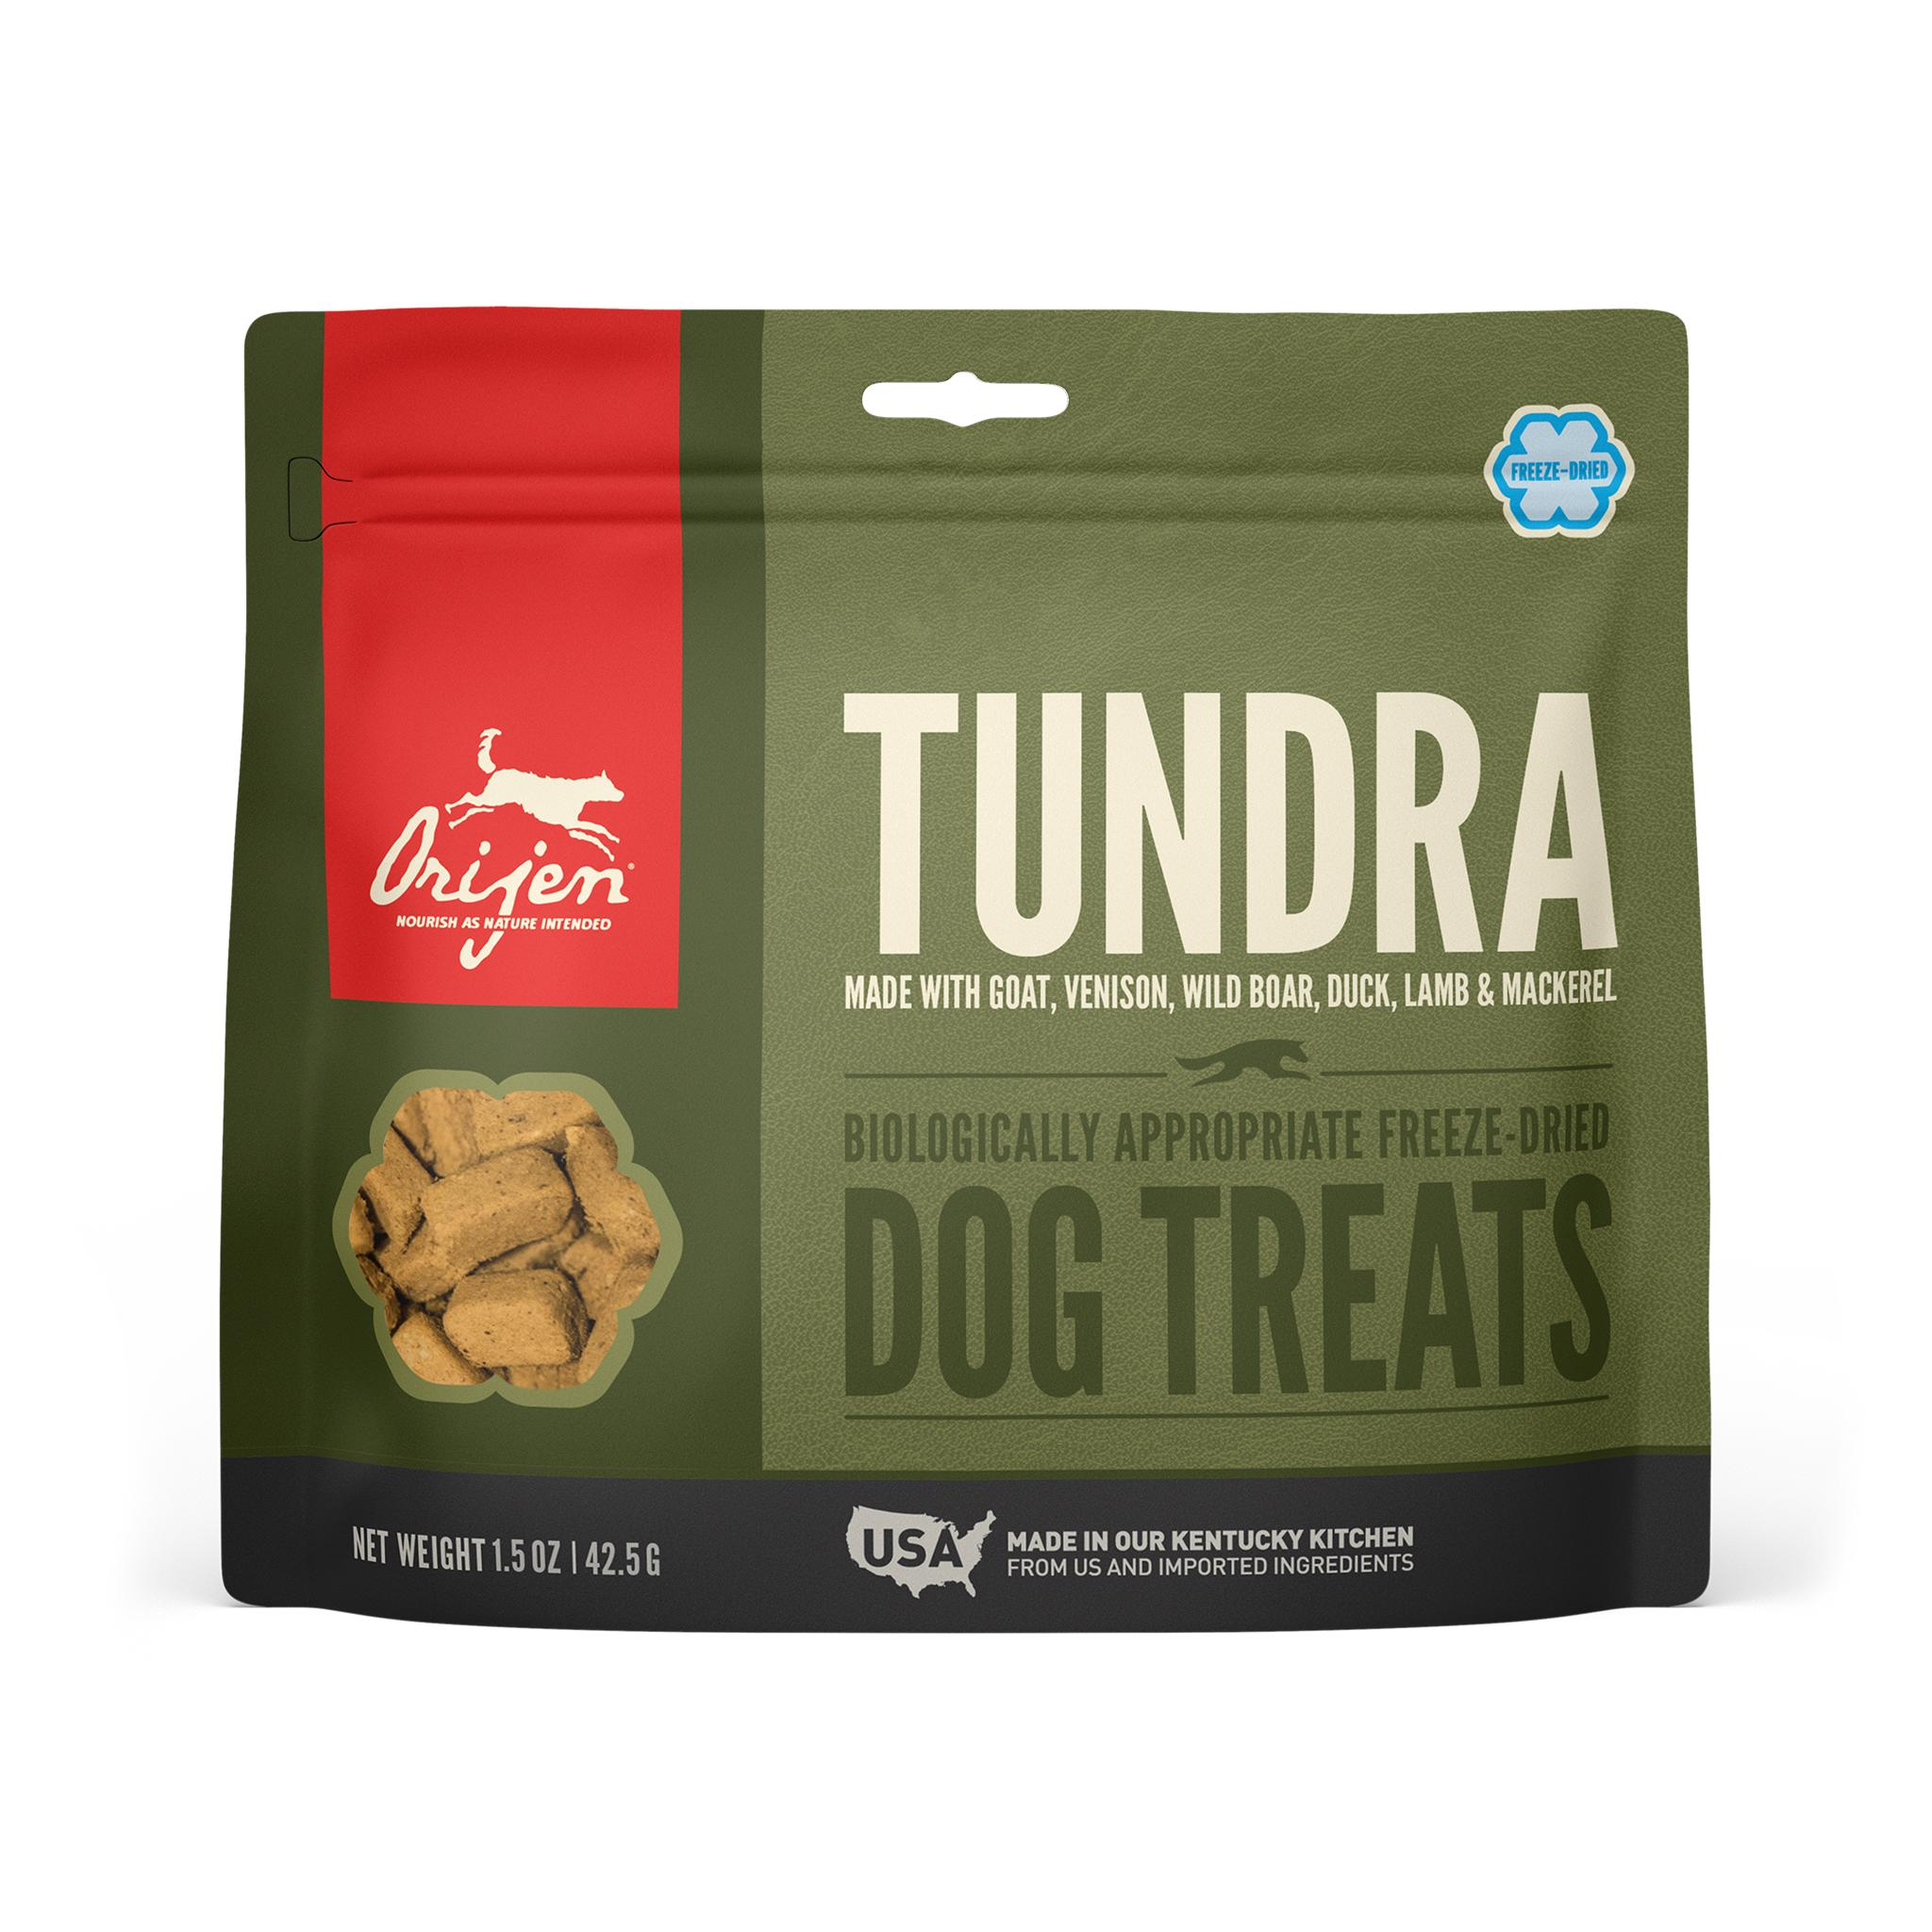 ORIJEN Tundra Grain-Free Freeze-Dried Dog Treats, 1.5-oz